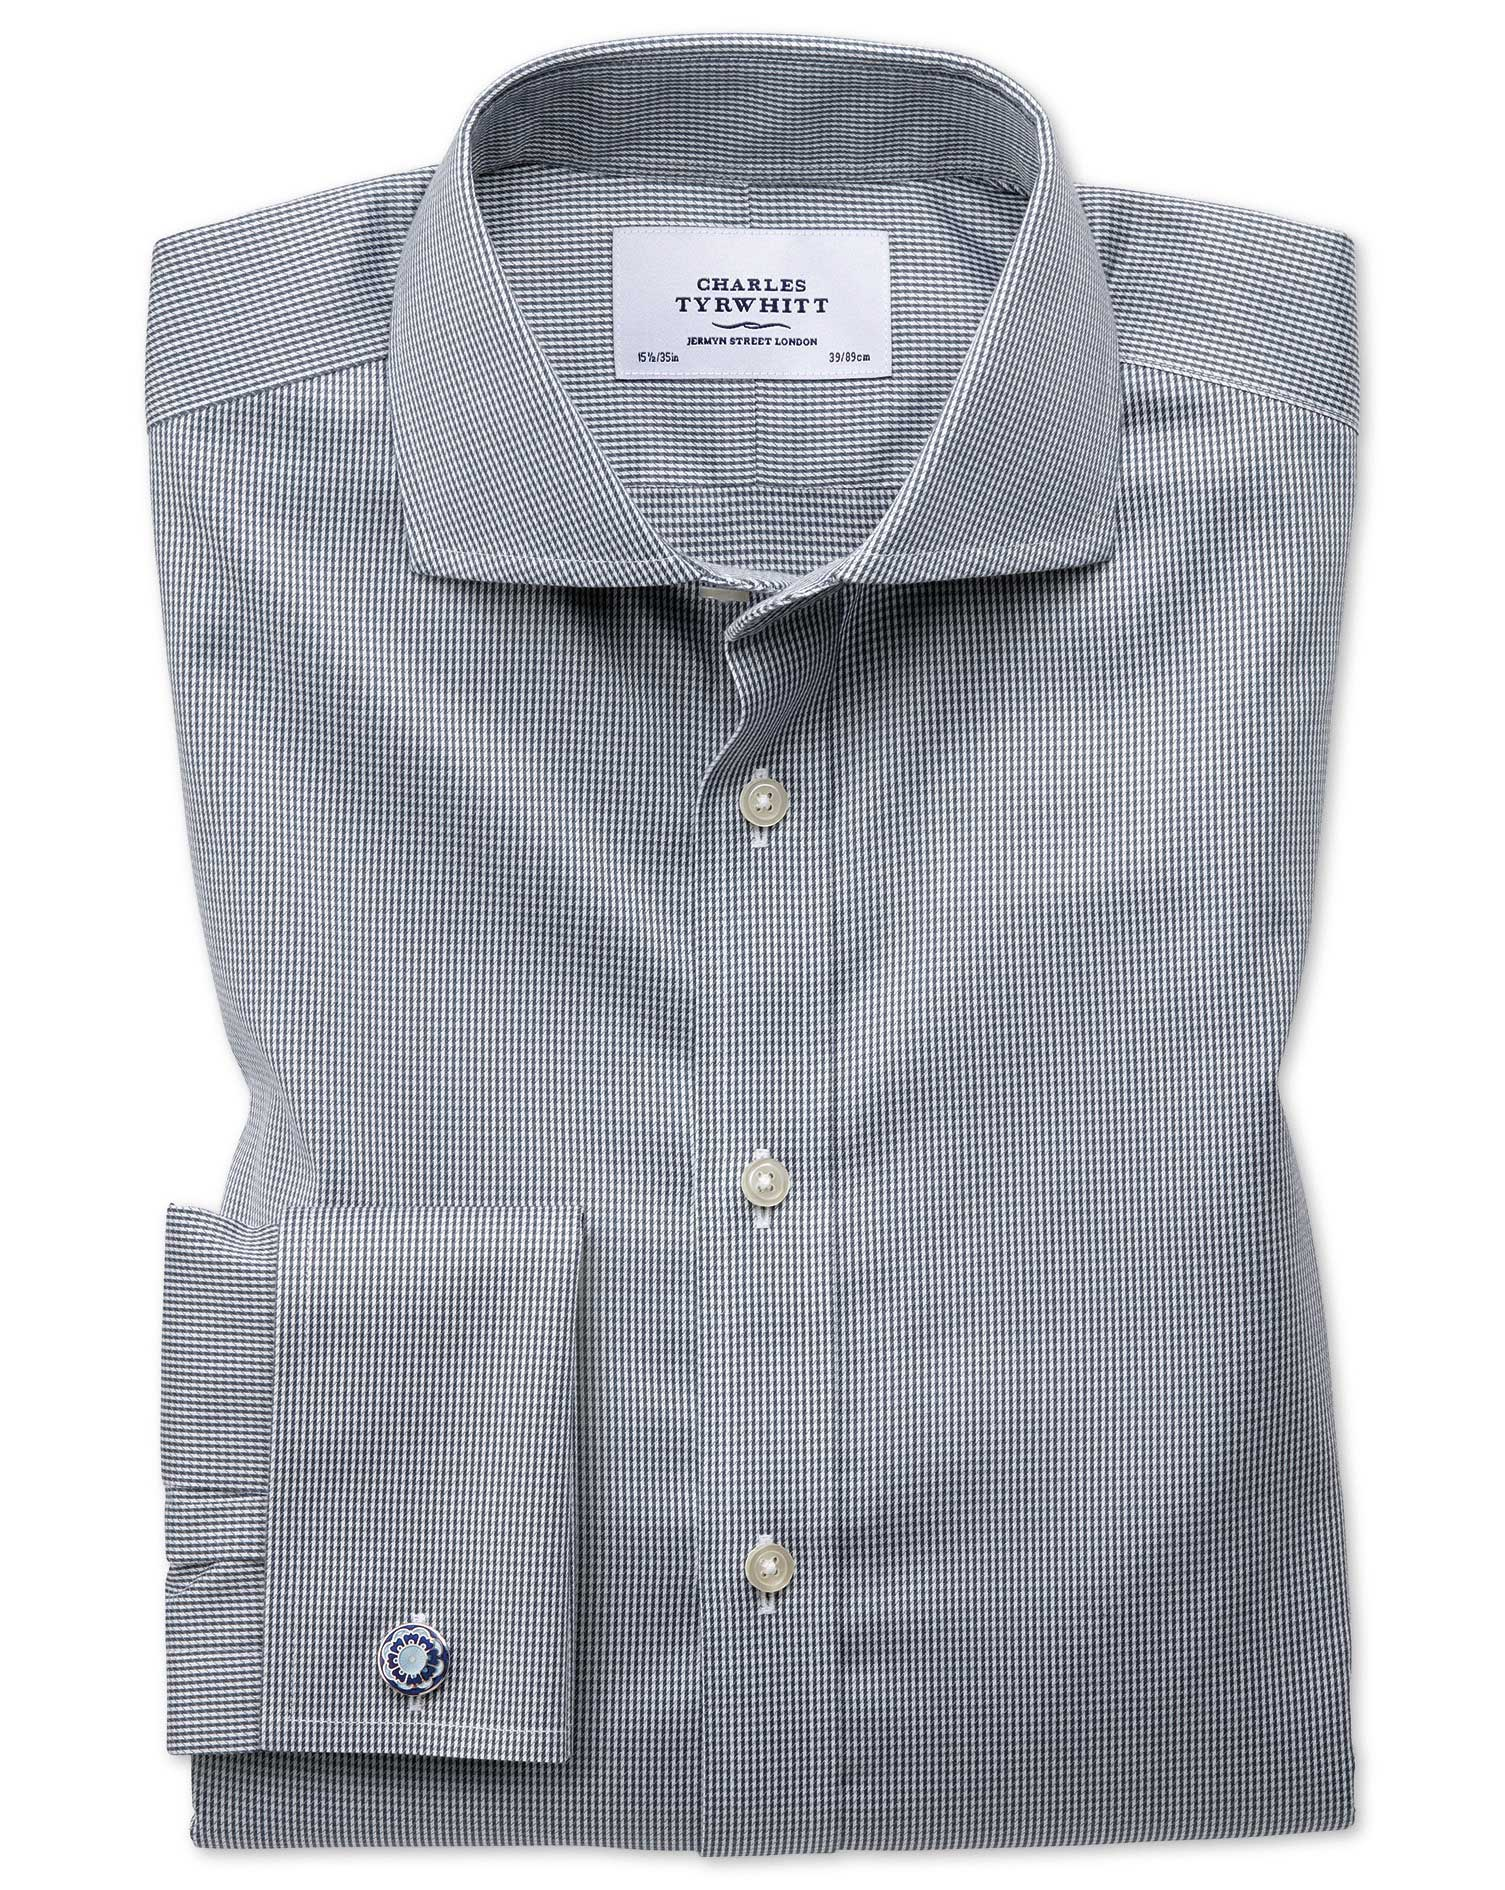 Slim Fit Cutaway Non-Iron Puppytooth Dark Grey Cotton Formal Shirt Double Cuff Size 16.5/36 by Charl